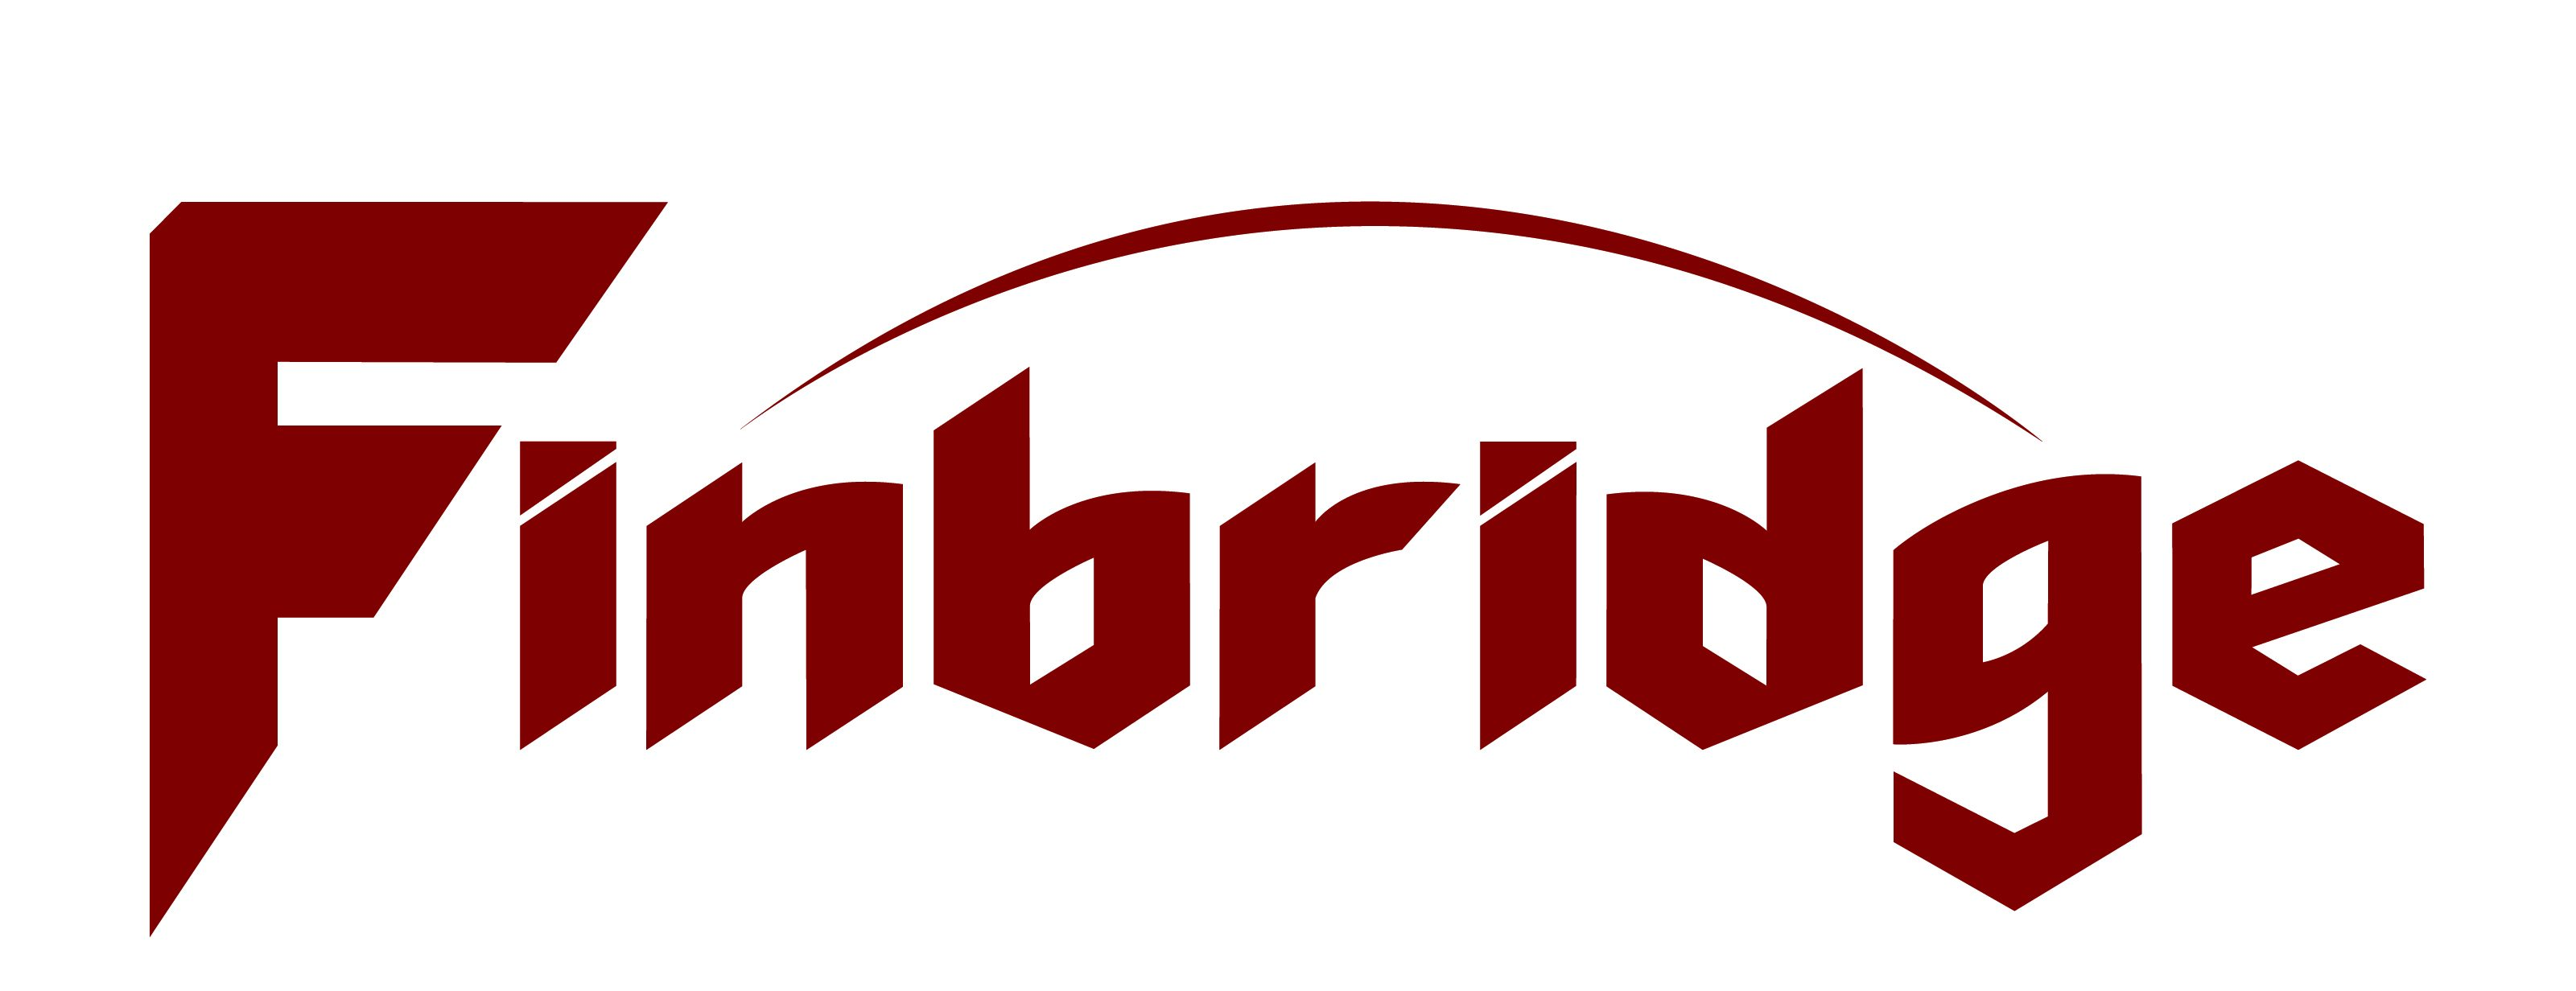 Finbridge Expo Logo